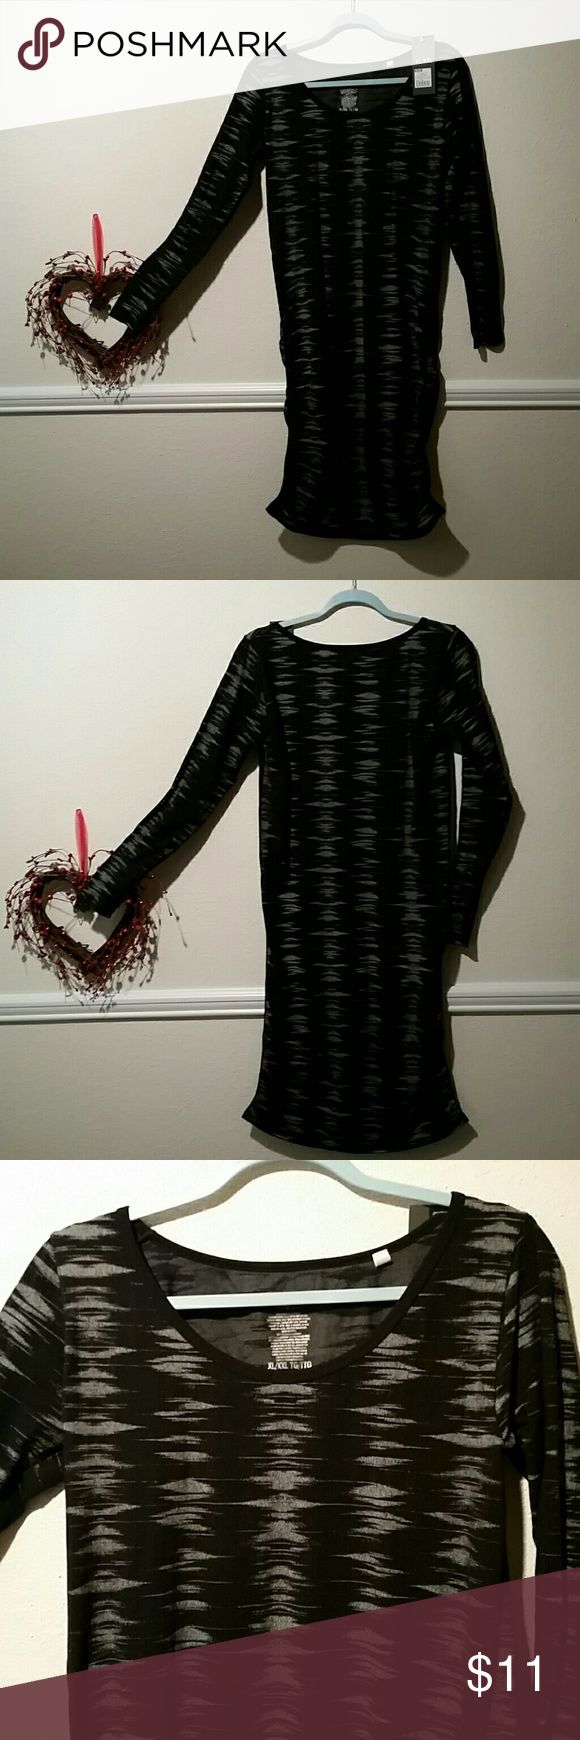 Awesome black and silver scooped neck nylon Never worn black/silver ruched sides dress with scoop neck long sleeved dress. Mossimo Supply Co Dresses Long Sleeve